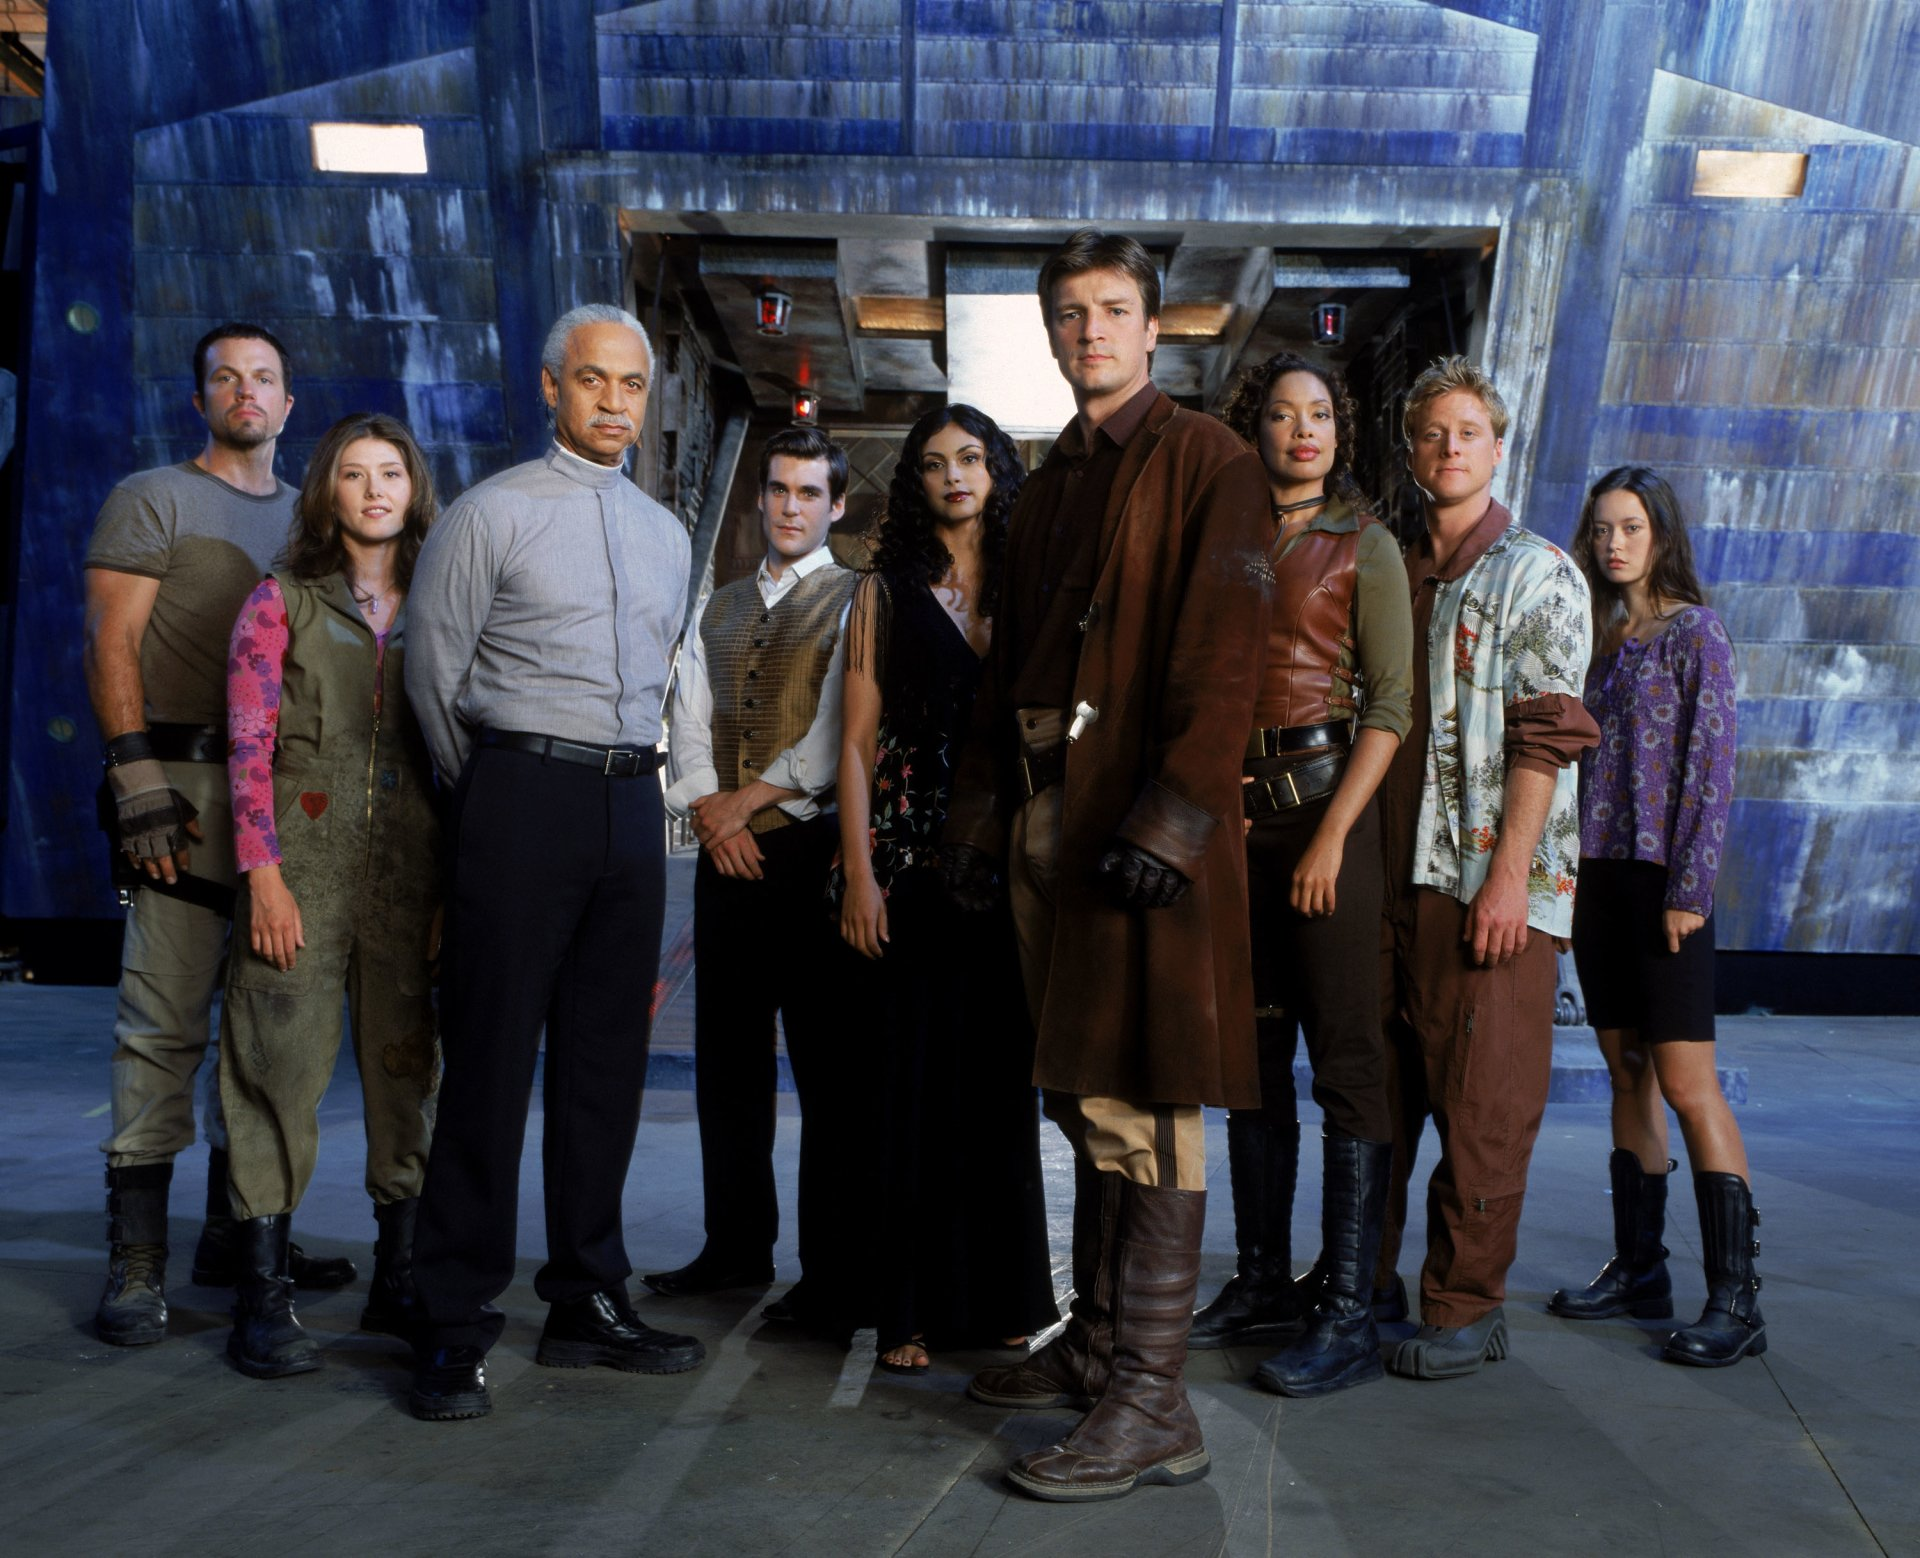 TV Show - Firefly  Nathan Fillion Malcolm Reynolds Ron Glass Derrial Book Shepherd Book Jewel Staite Kaylee Frye Gina Torres Zoe Washburne Summer Glau Wallpaper